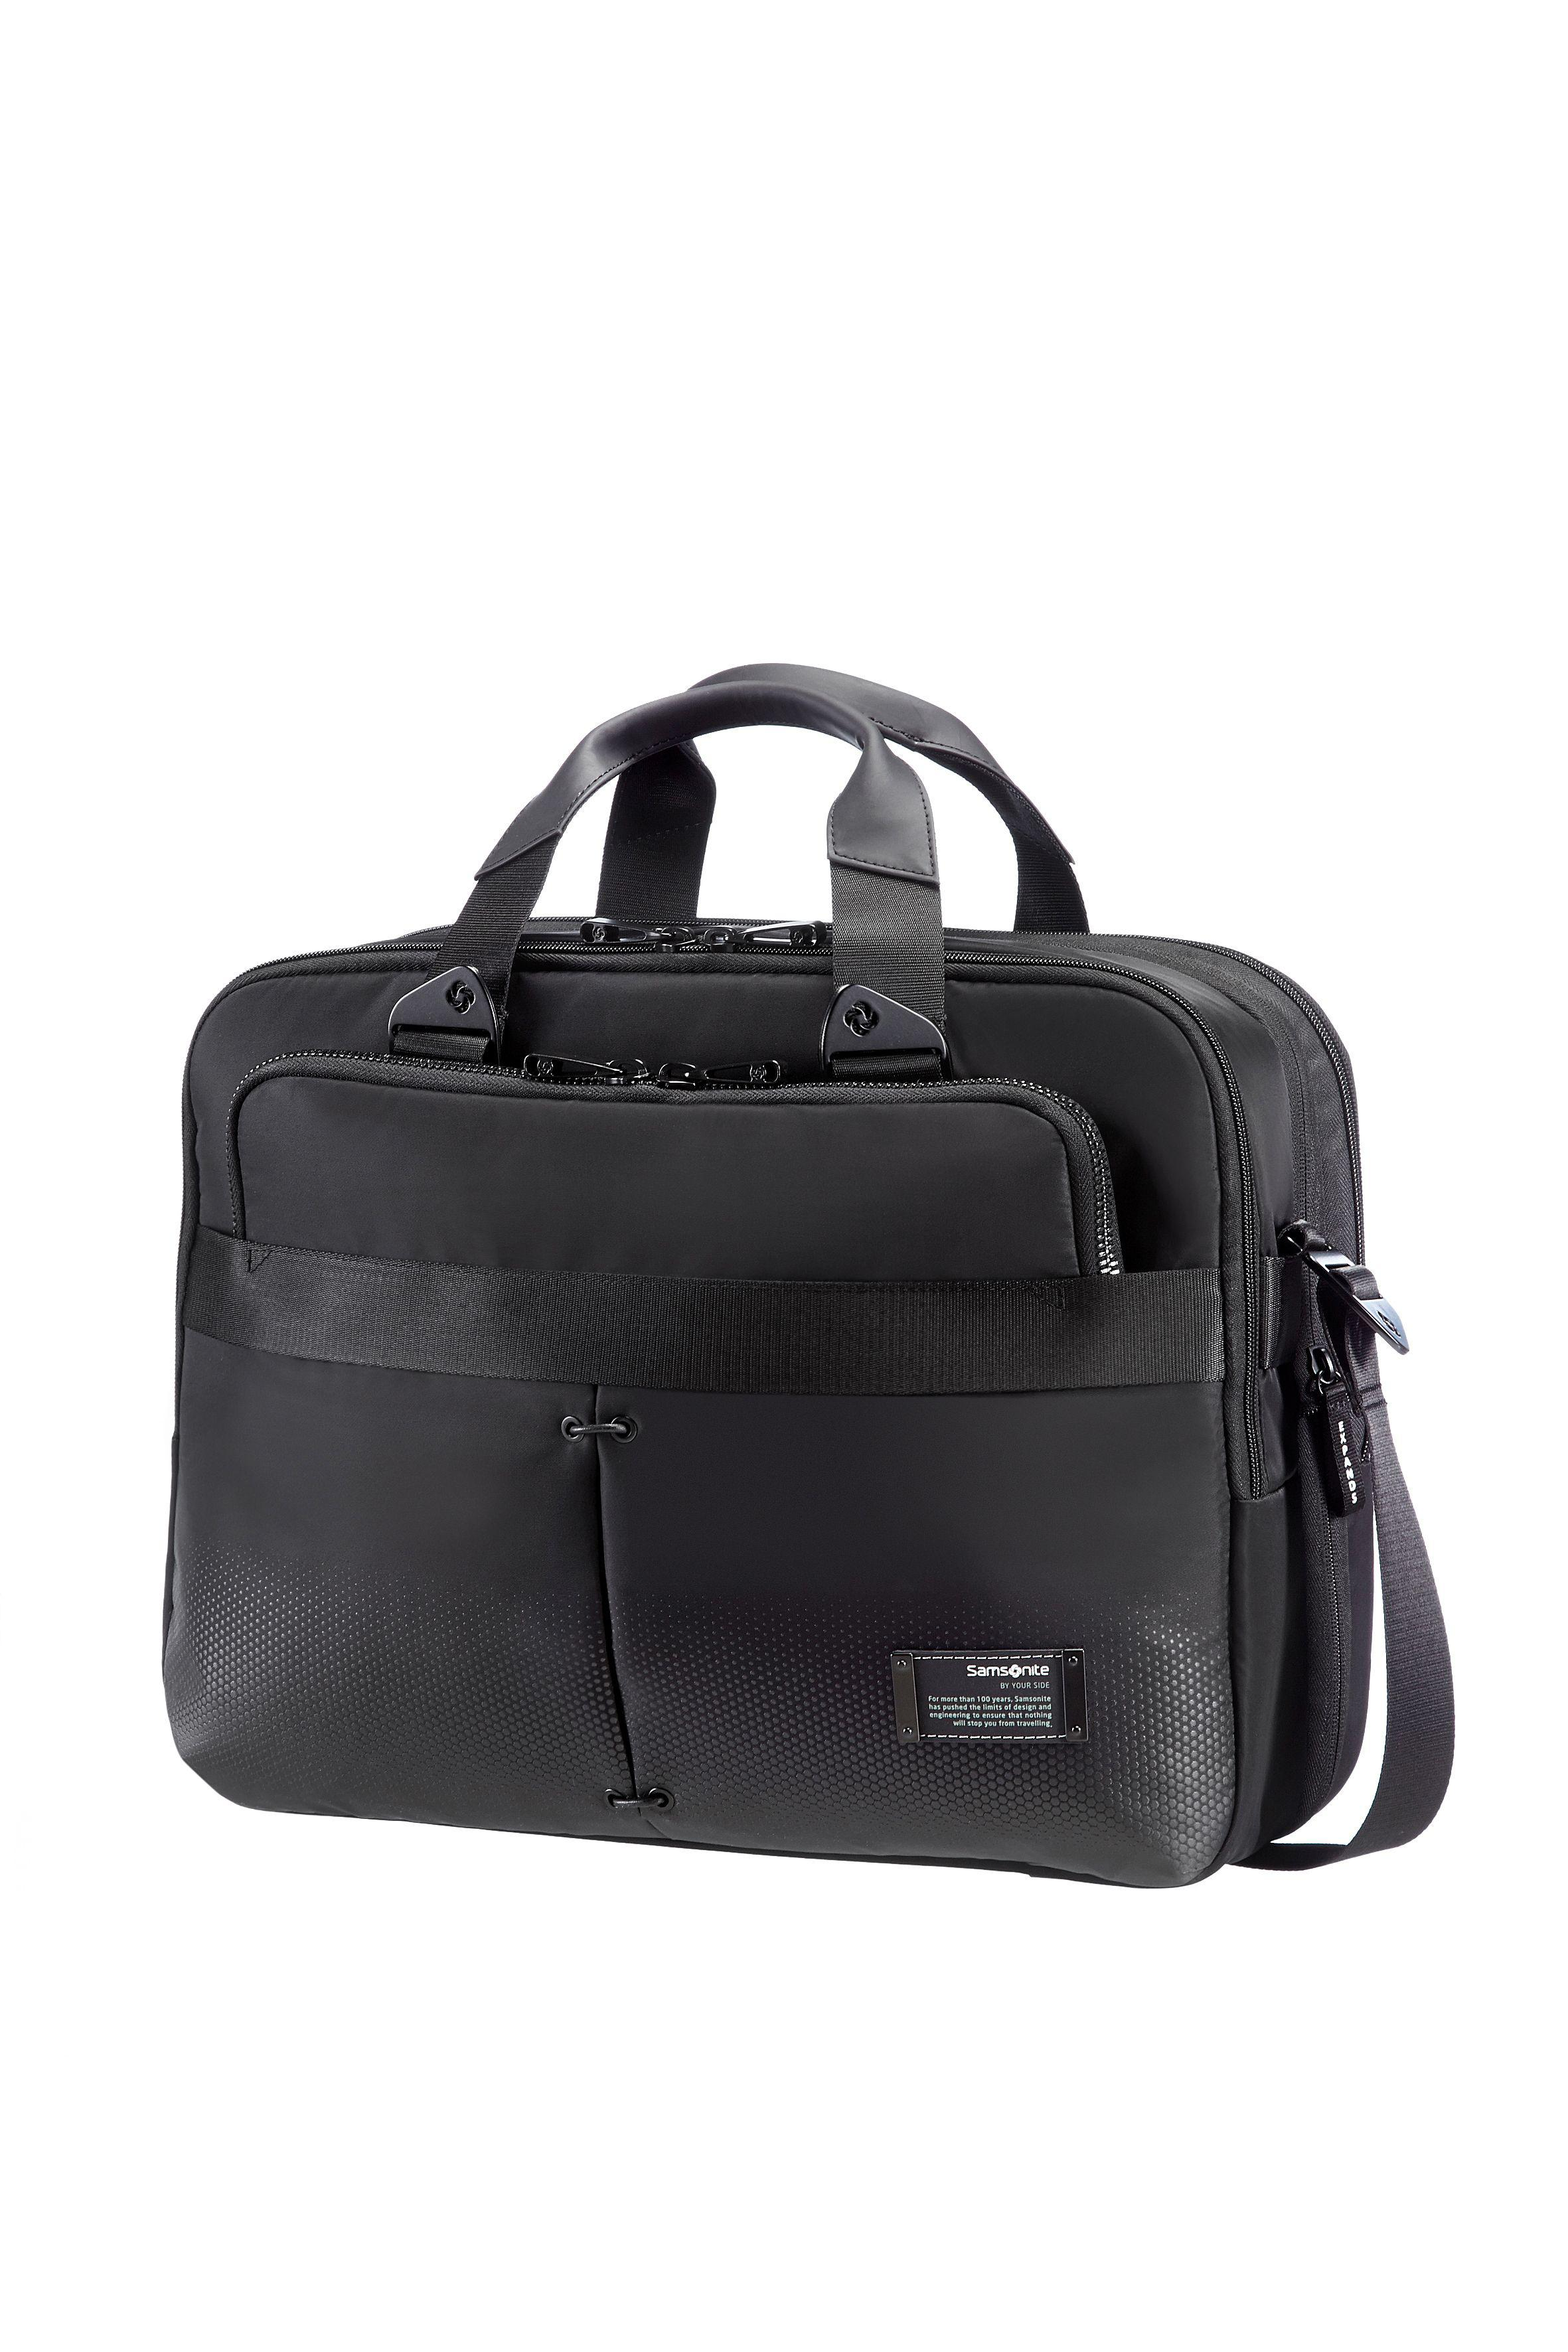 Samsonite Openroad Bailhandle Expandable 15.6inch Laptop Briefcase Clearance Latest Cheap Sale Huge Surprise 3Jvl6zRtz